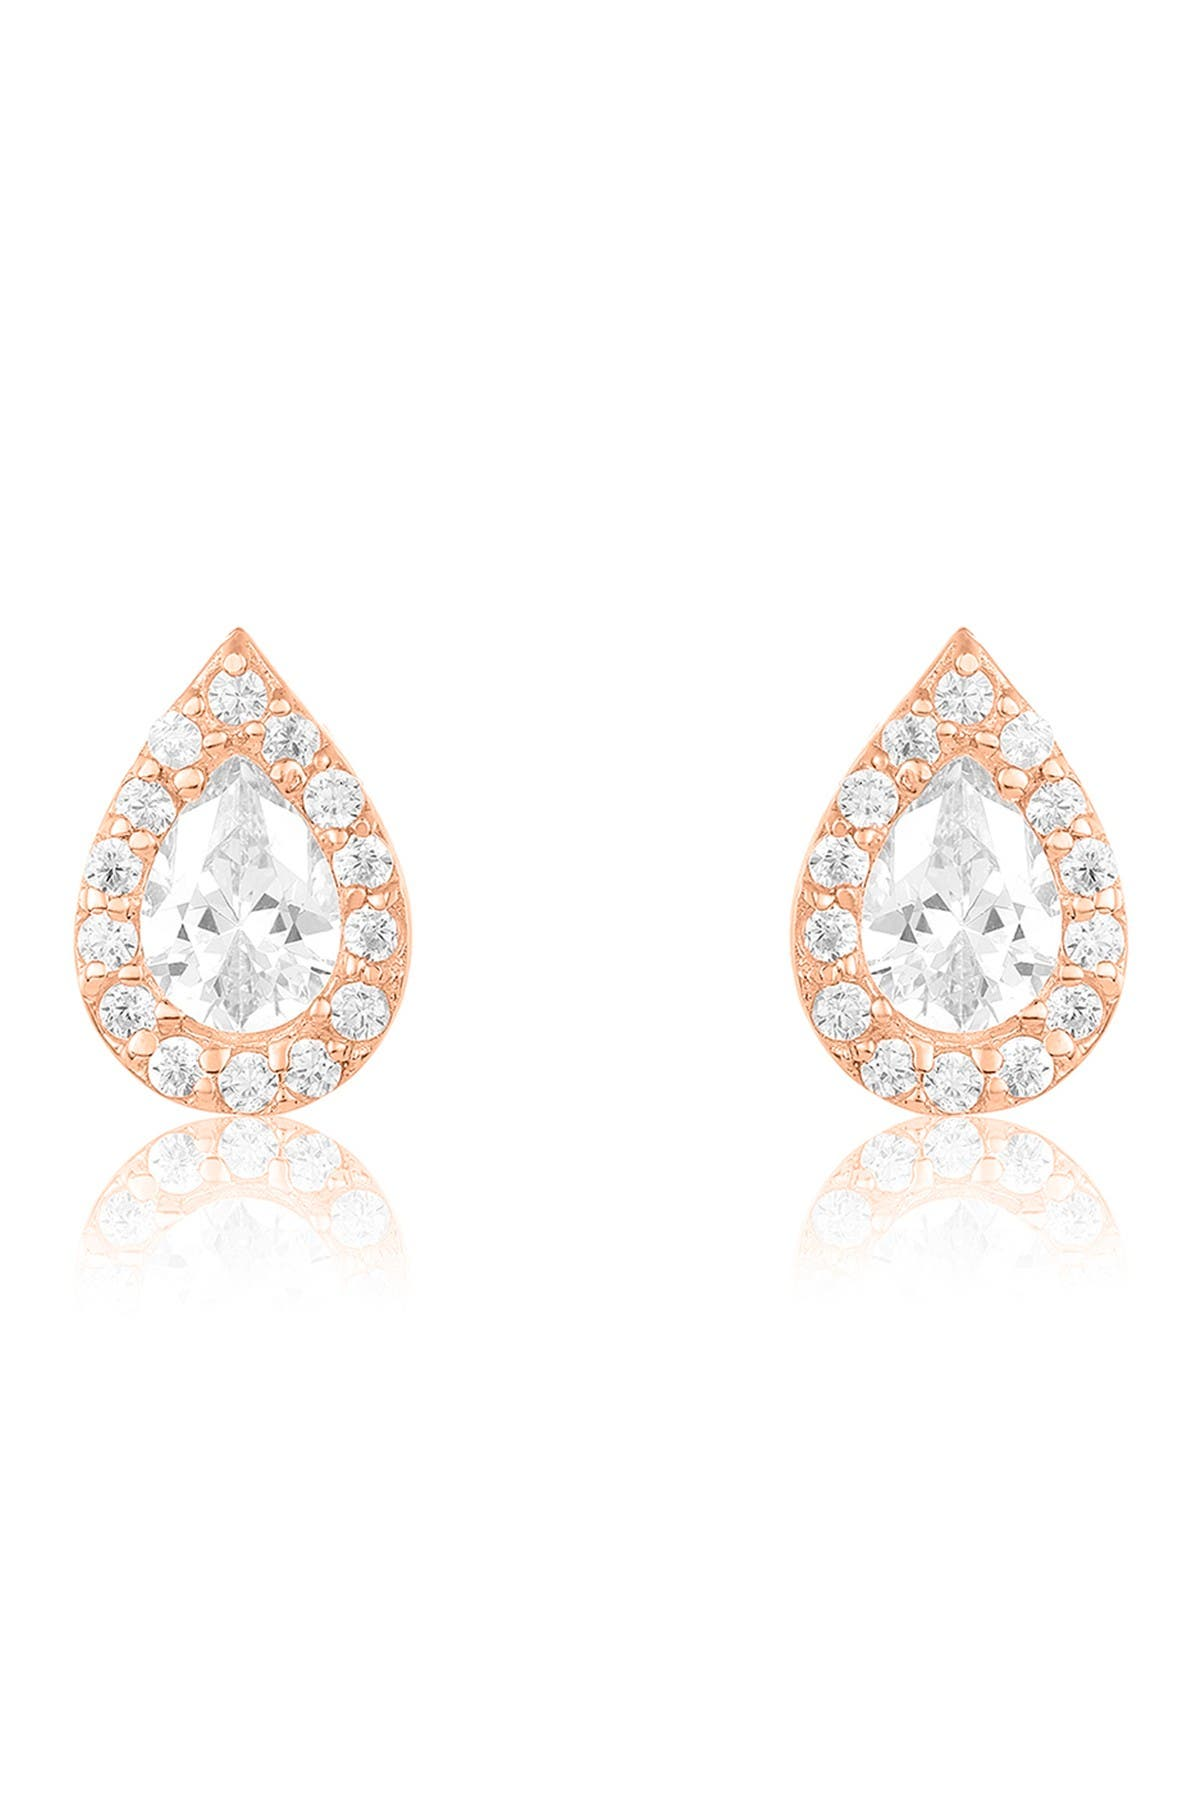 Image of Sterling Forever 14K Rose Gold Vermeil Plated Sterling Silver CZ Teardrop Stud Earrings